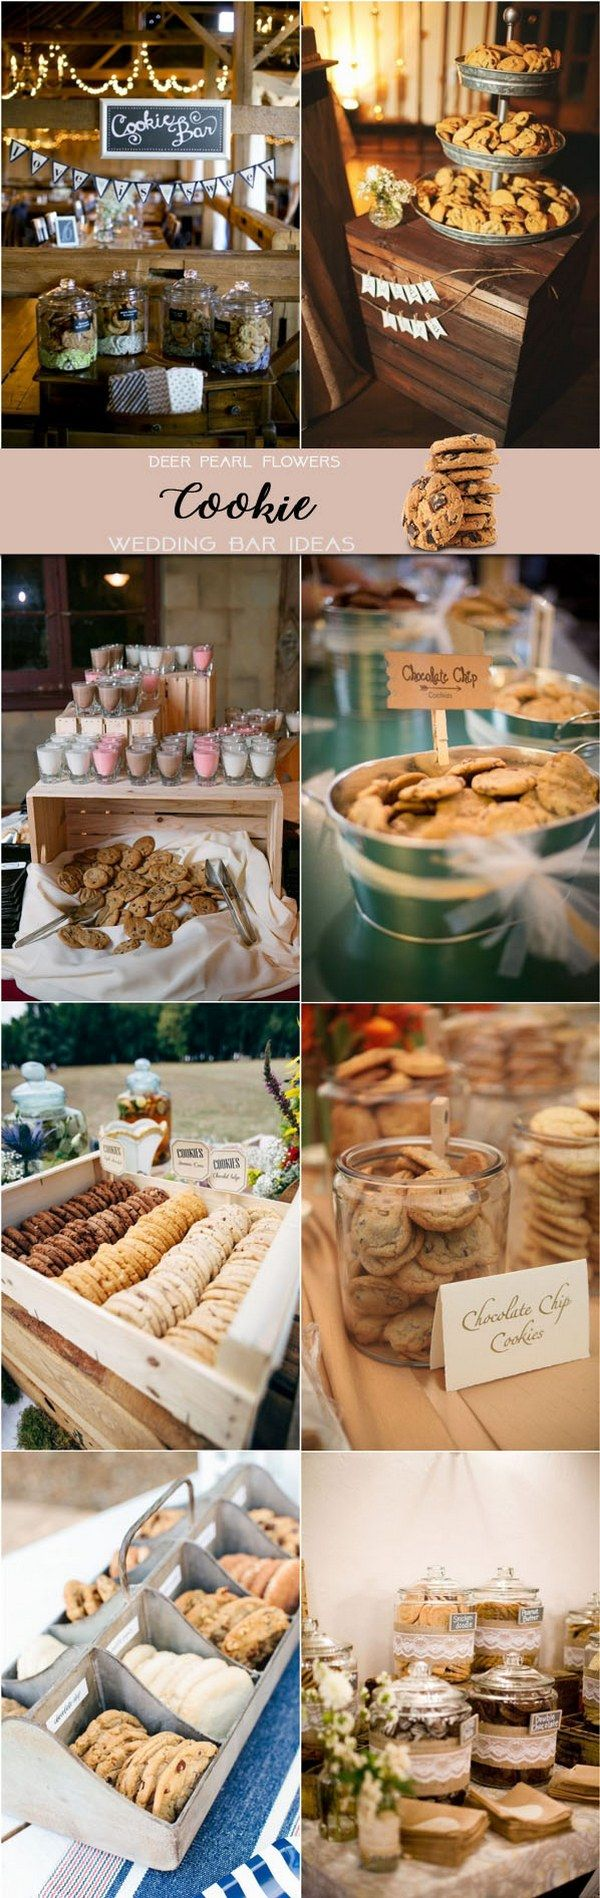 Rustic cookie wedding dessert food bar ideas for wedding reception / http://www.deerpearlflowers.com/wedding-catering-trends-dessert-bar-ideas/2/